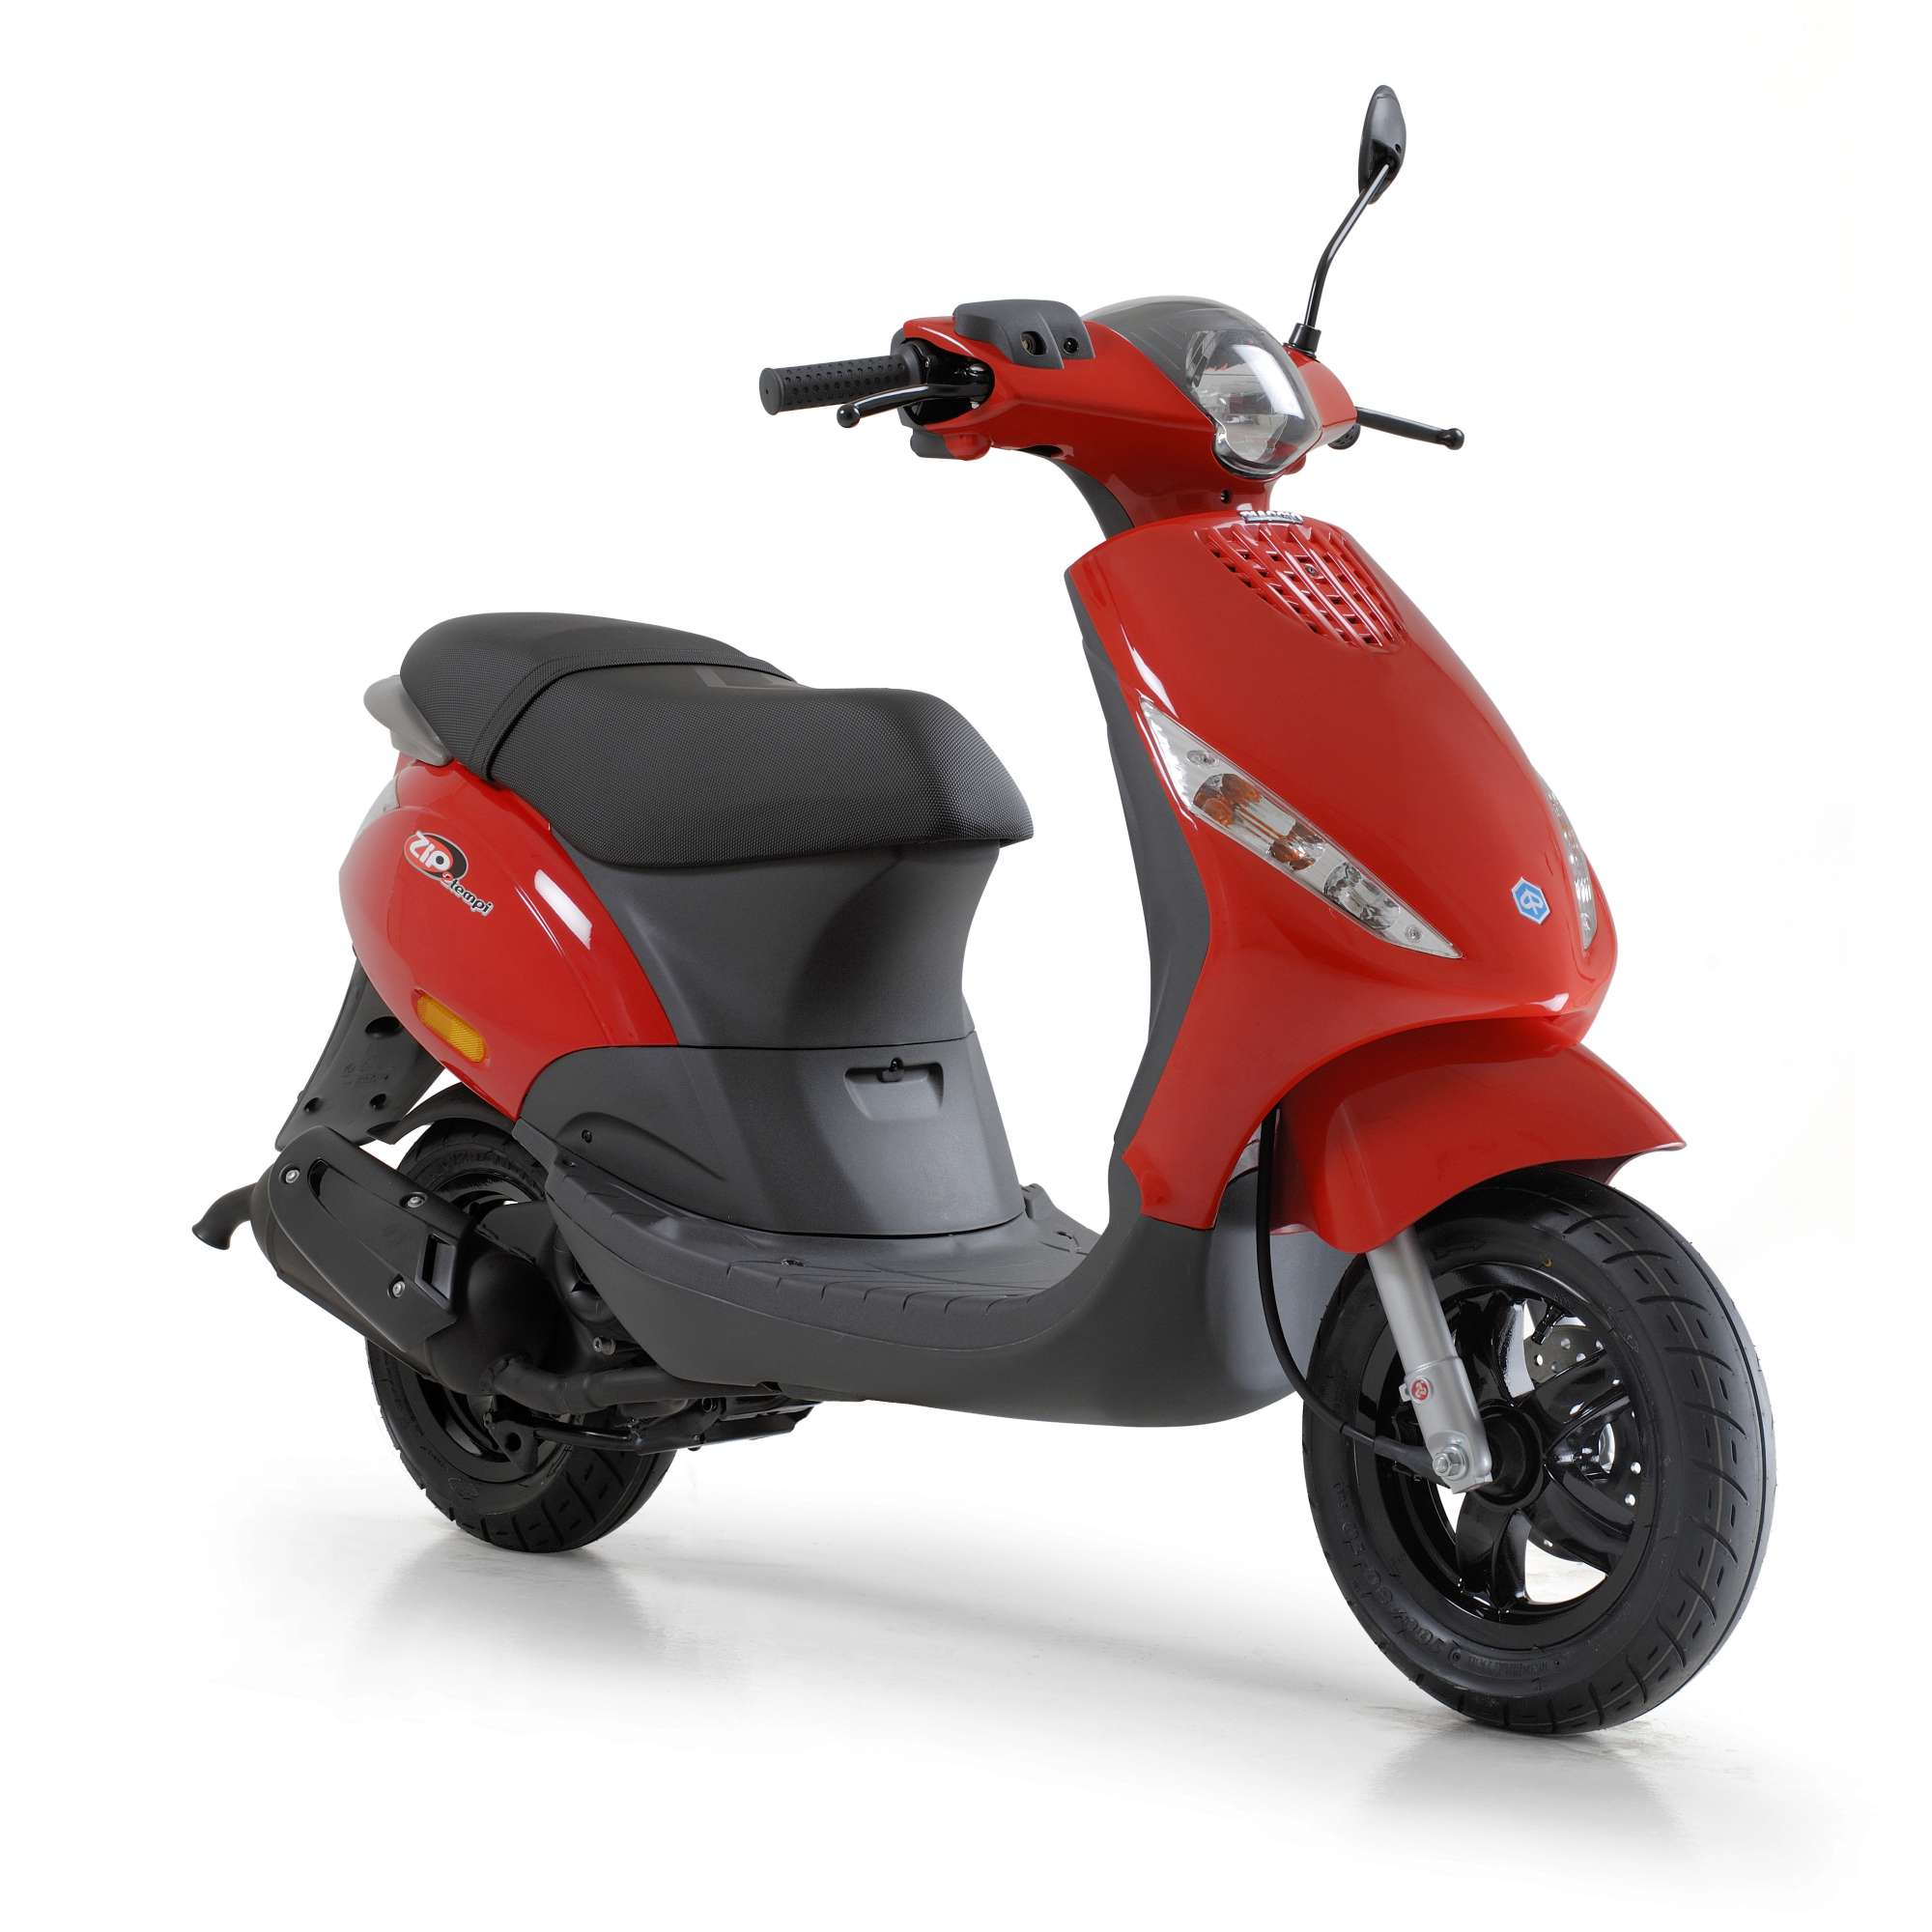 piaggio zip 50 2t all technical data of the model zip 50 2t from piaggio. Black Bedroom Furniture Sets. Home Design Ideas